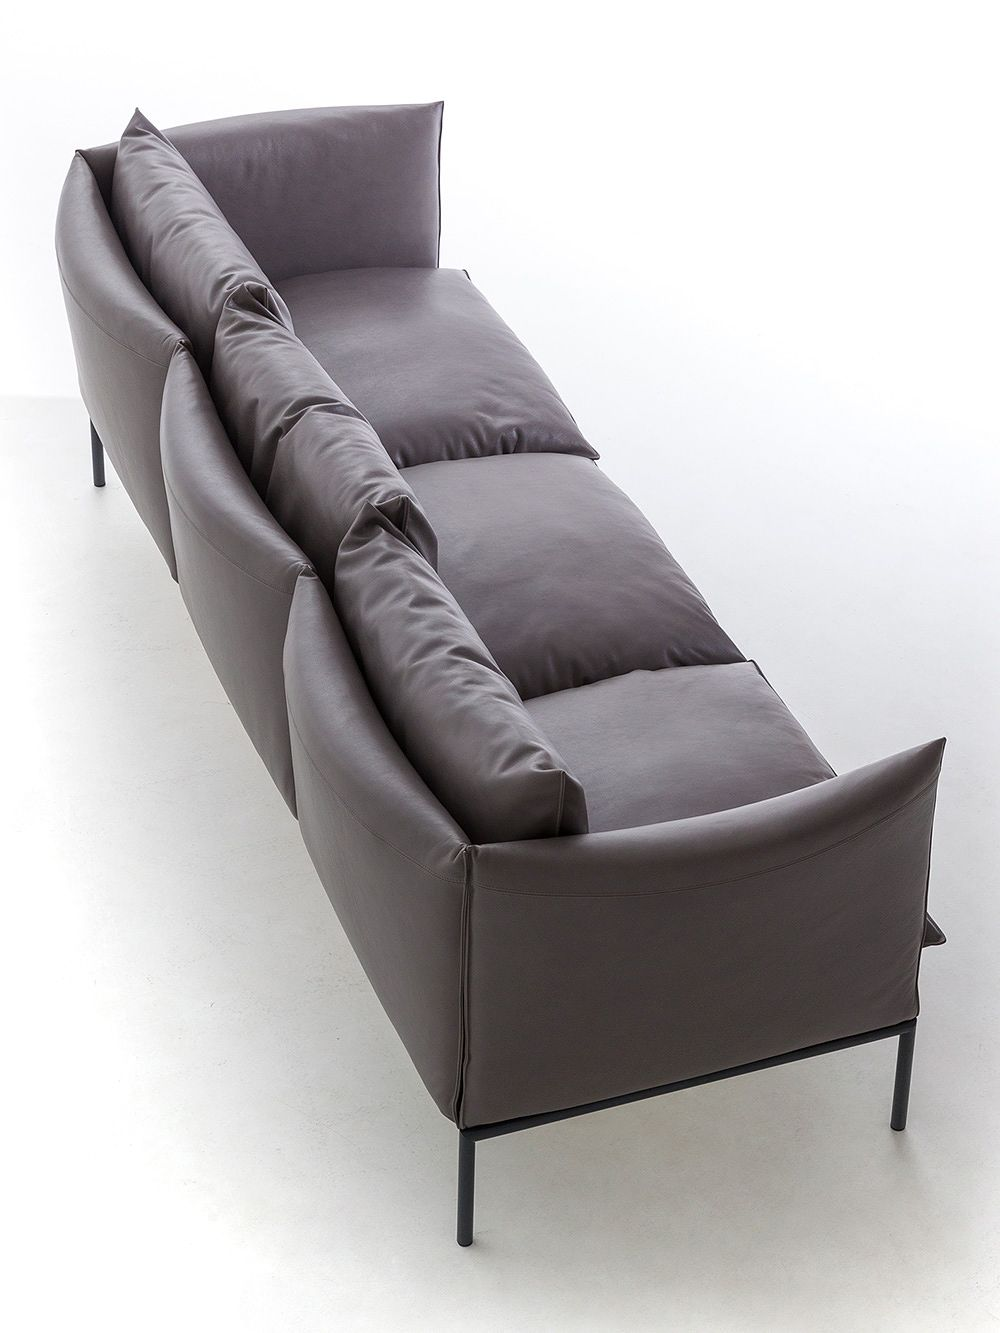 Moroso Gentry Extra Light sofa